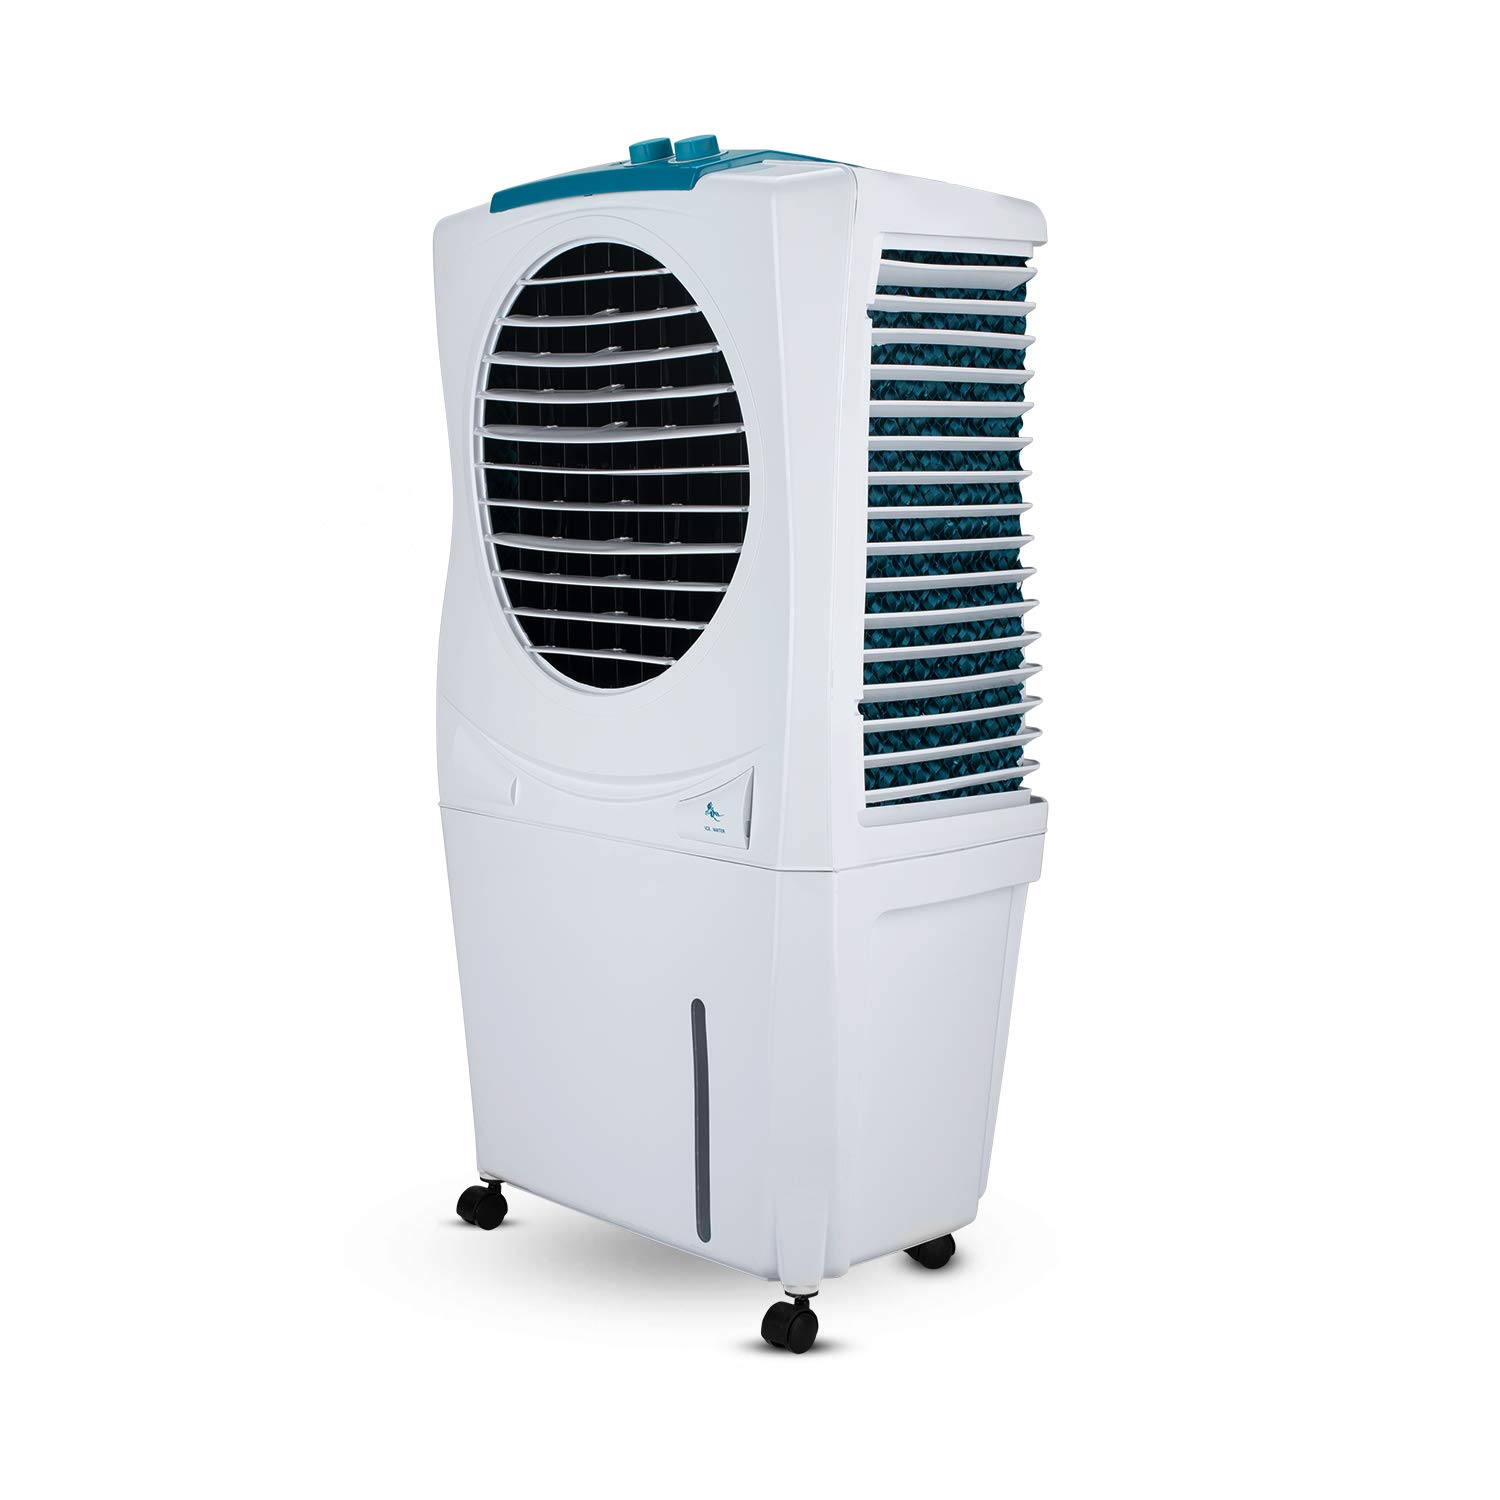 Symphony Ice Cube 27 Personal Room Air Cooler 27-litres